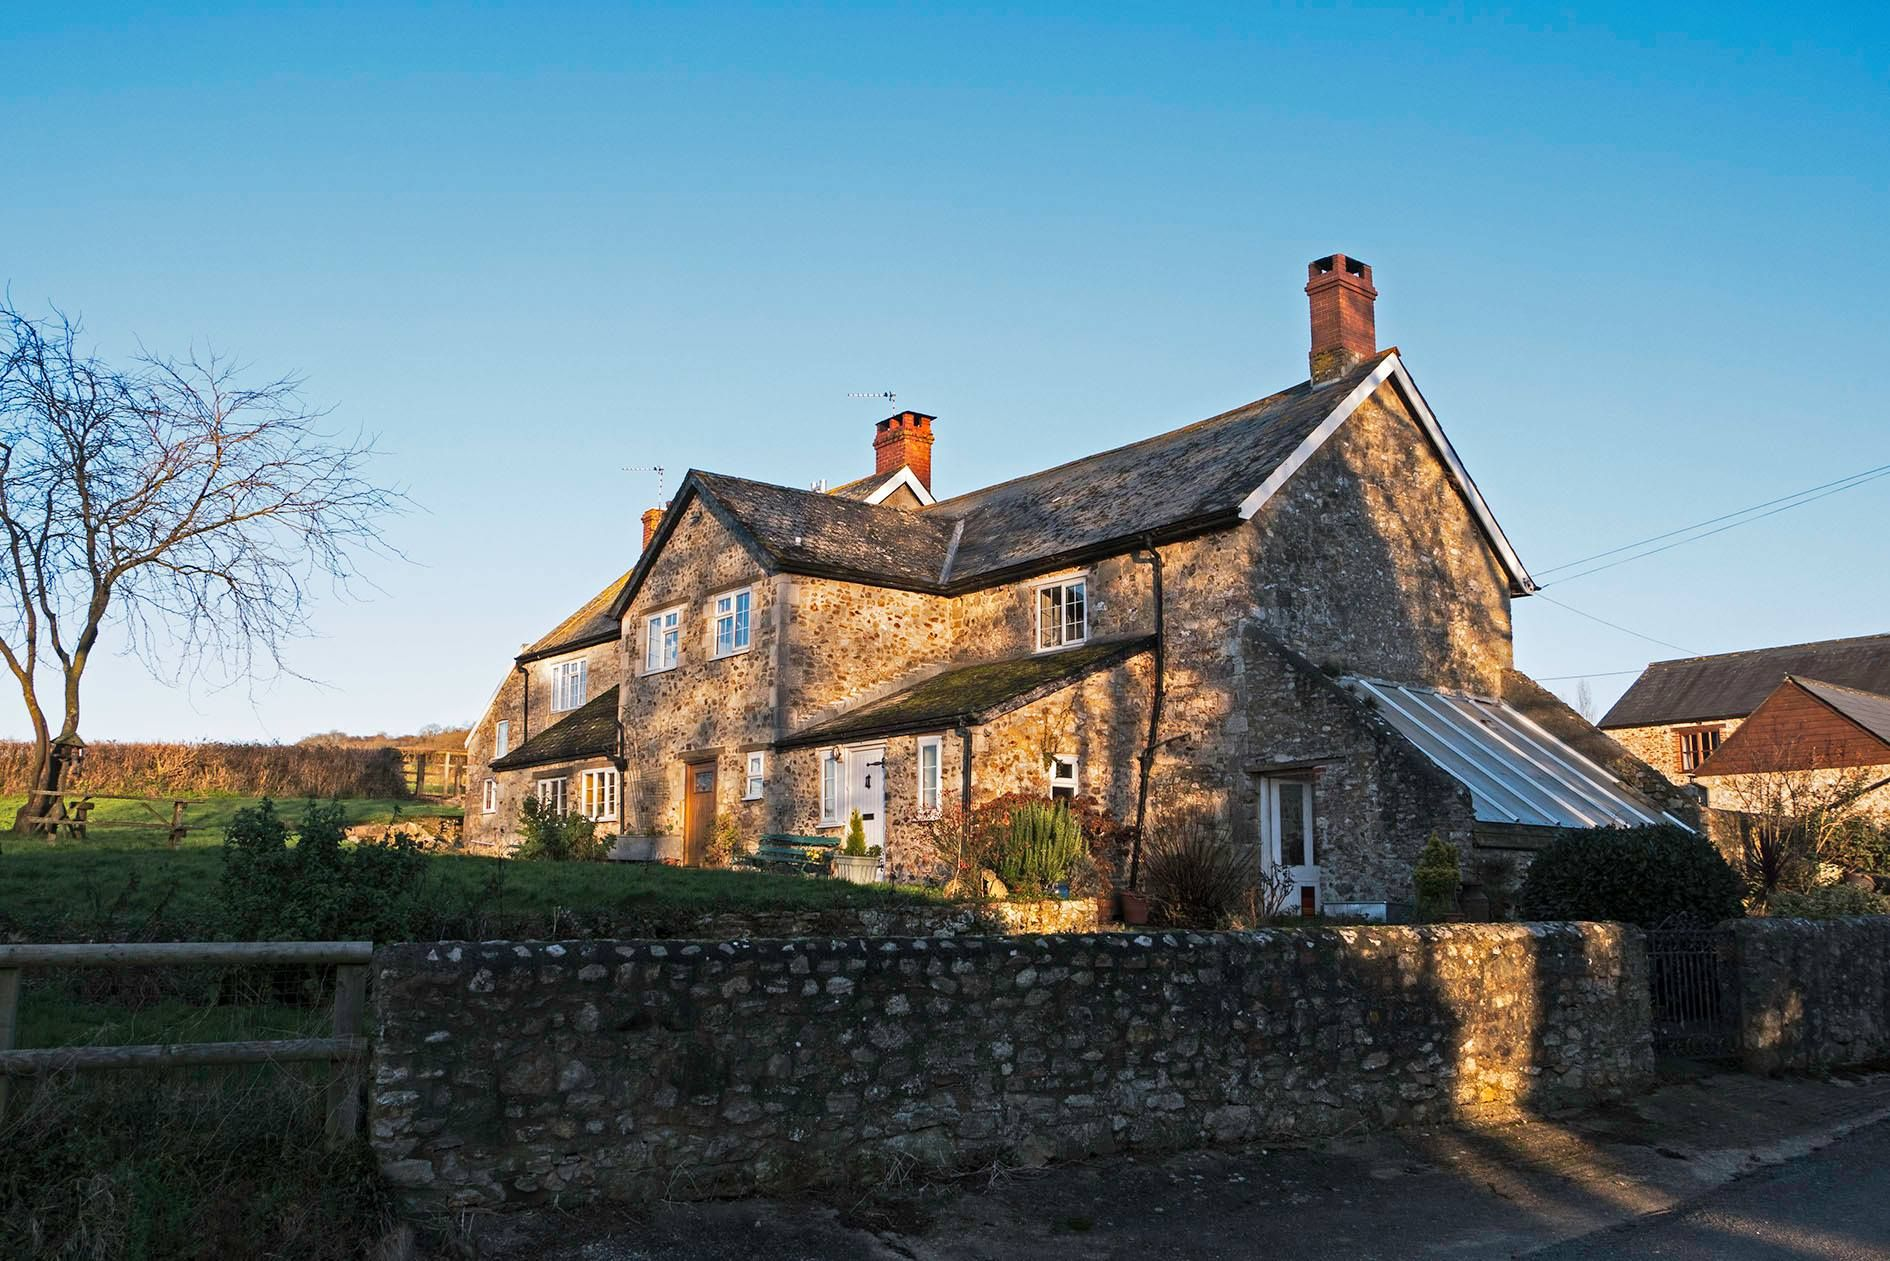 Dog Friendly Bed And Breakfast Uk